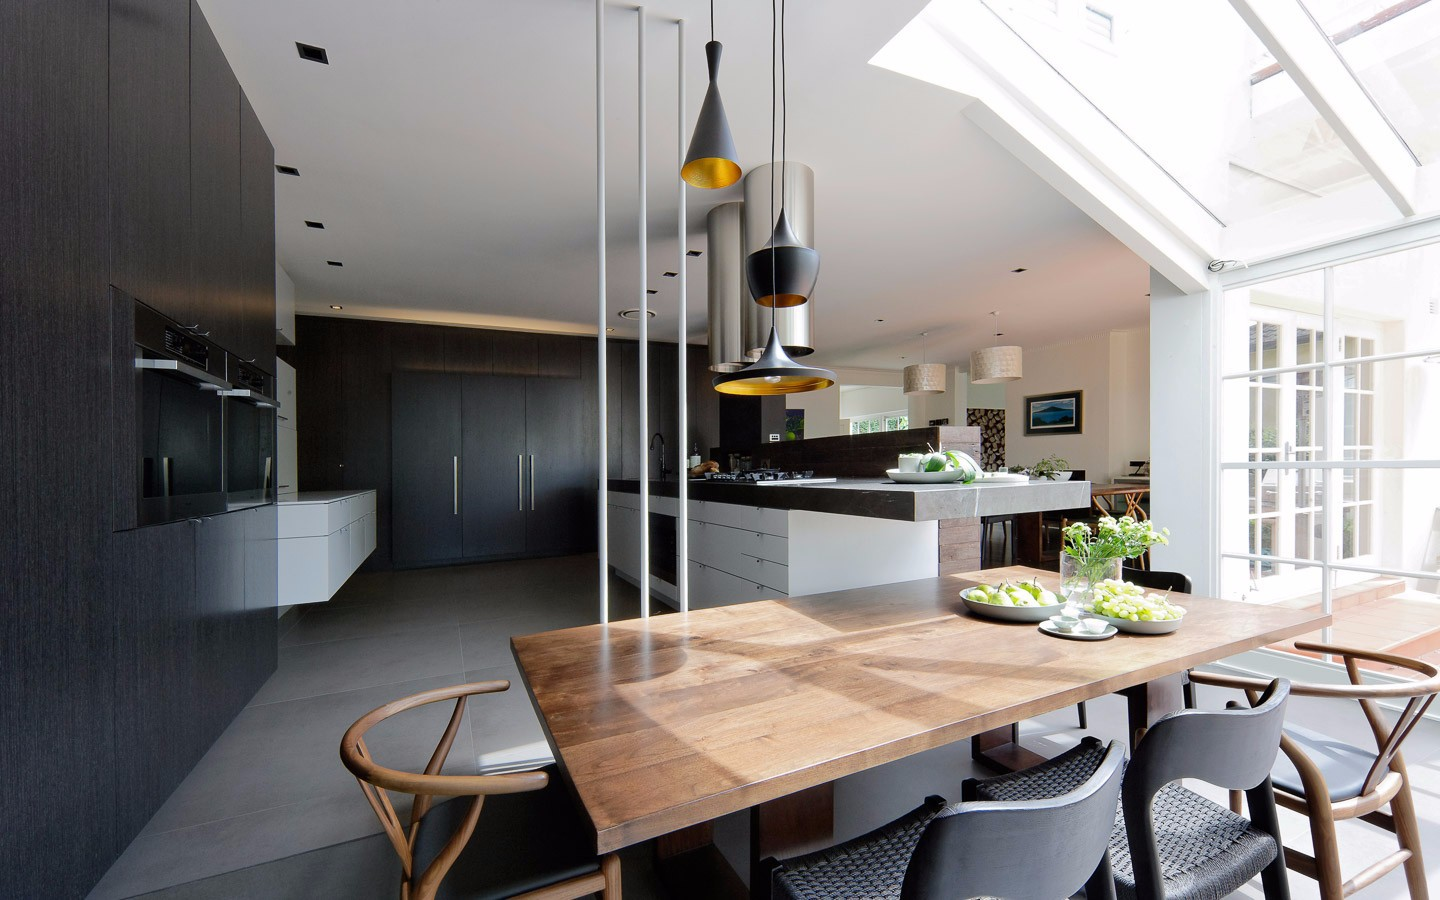 St-Ives-Kitchen-Dining-Kitchen-wide-aspect